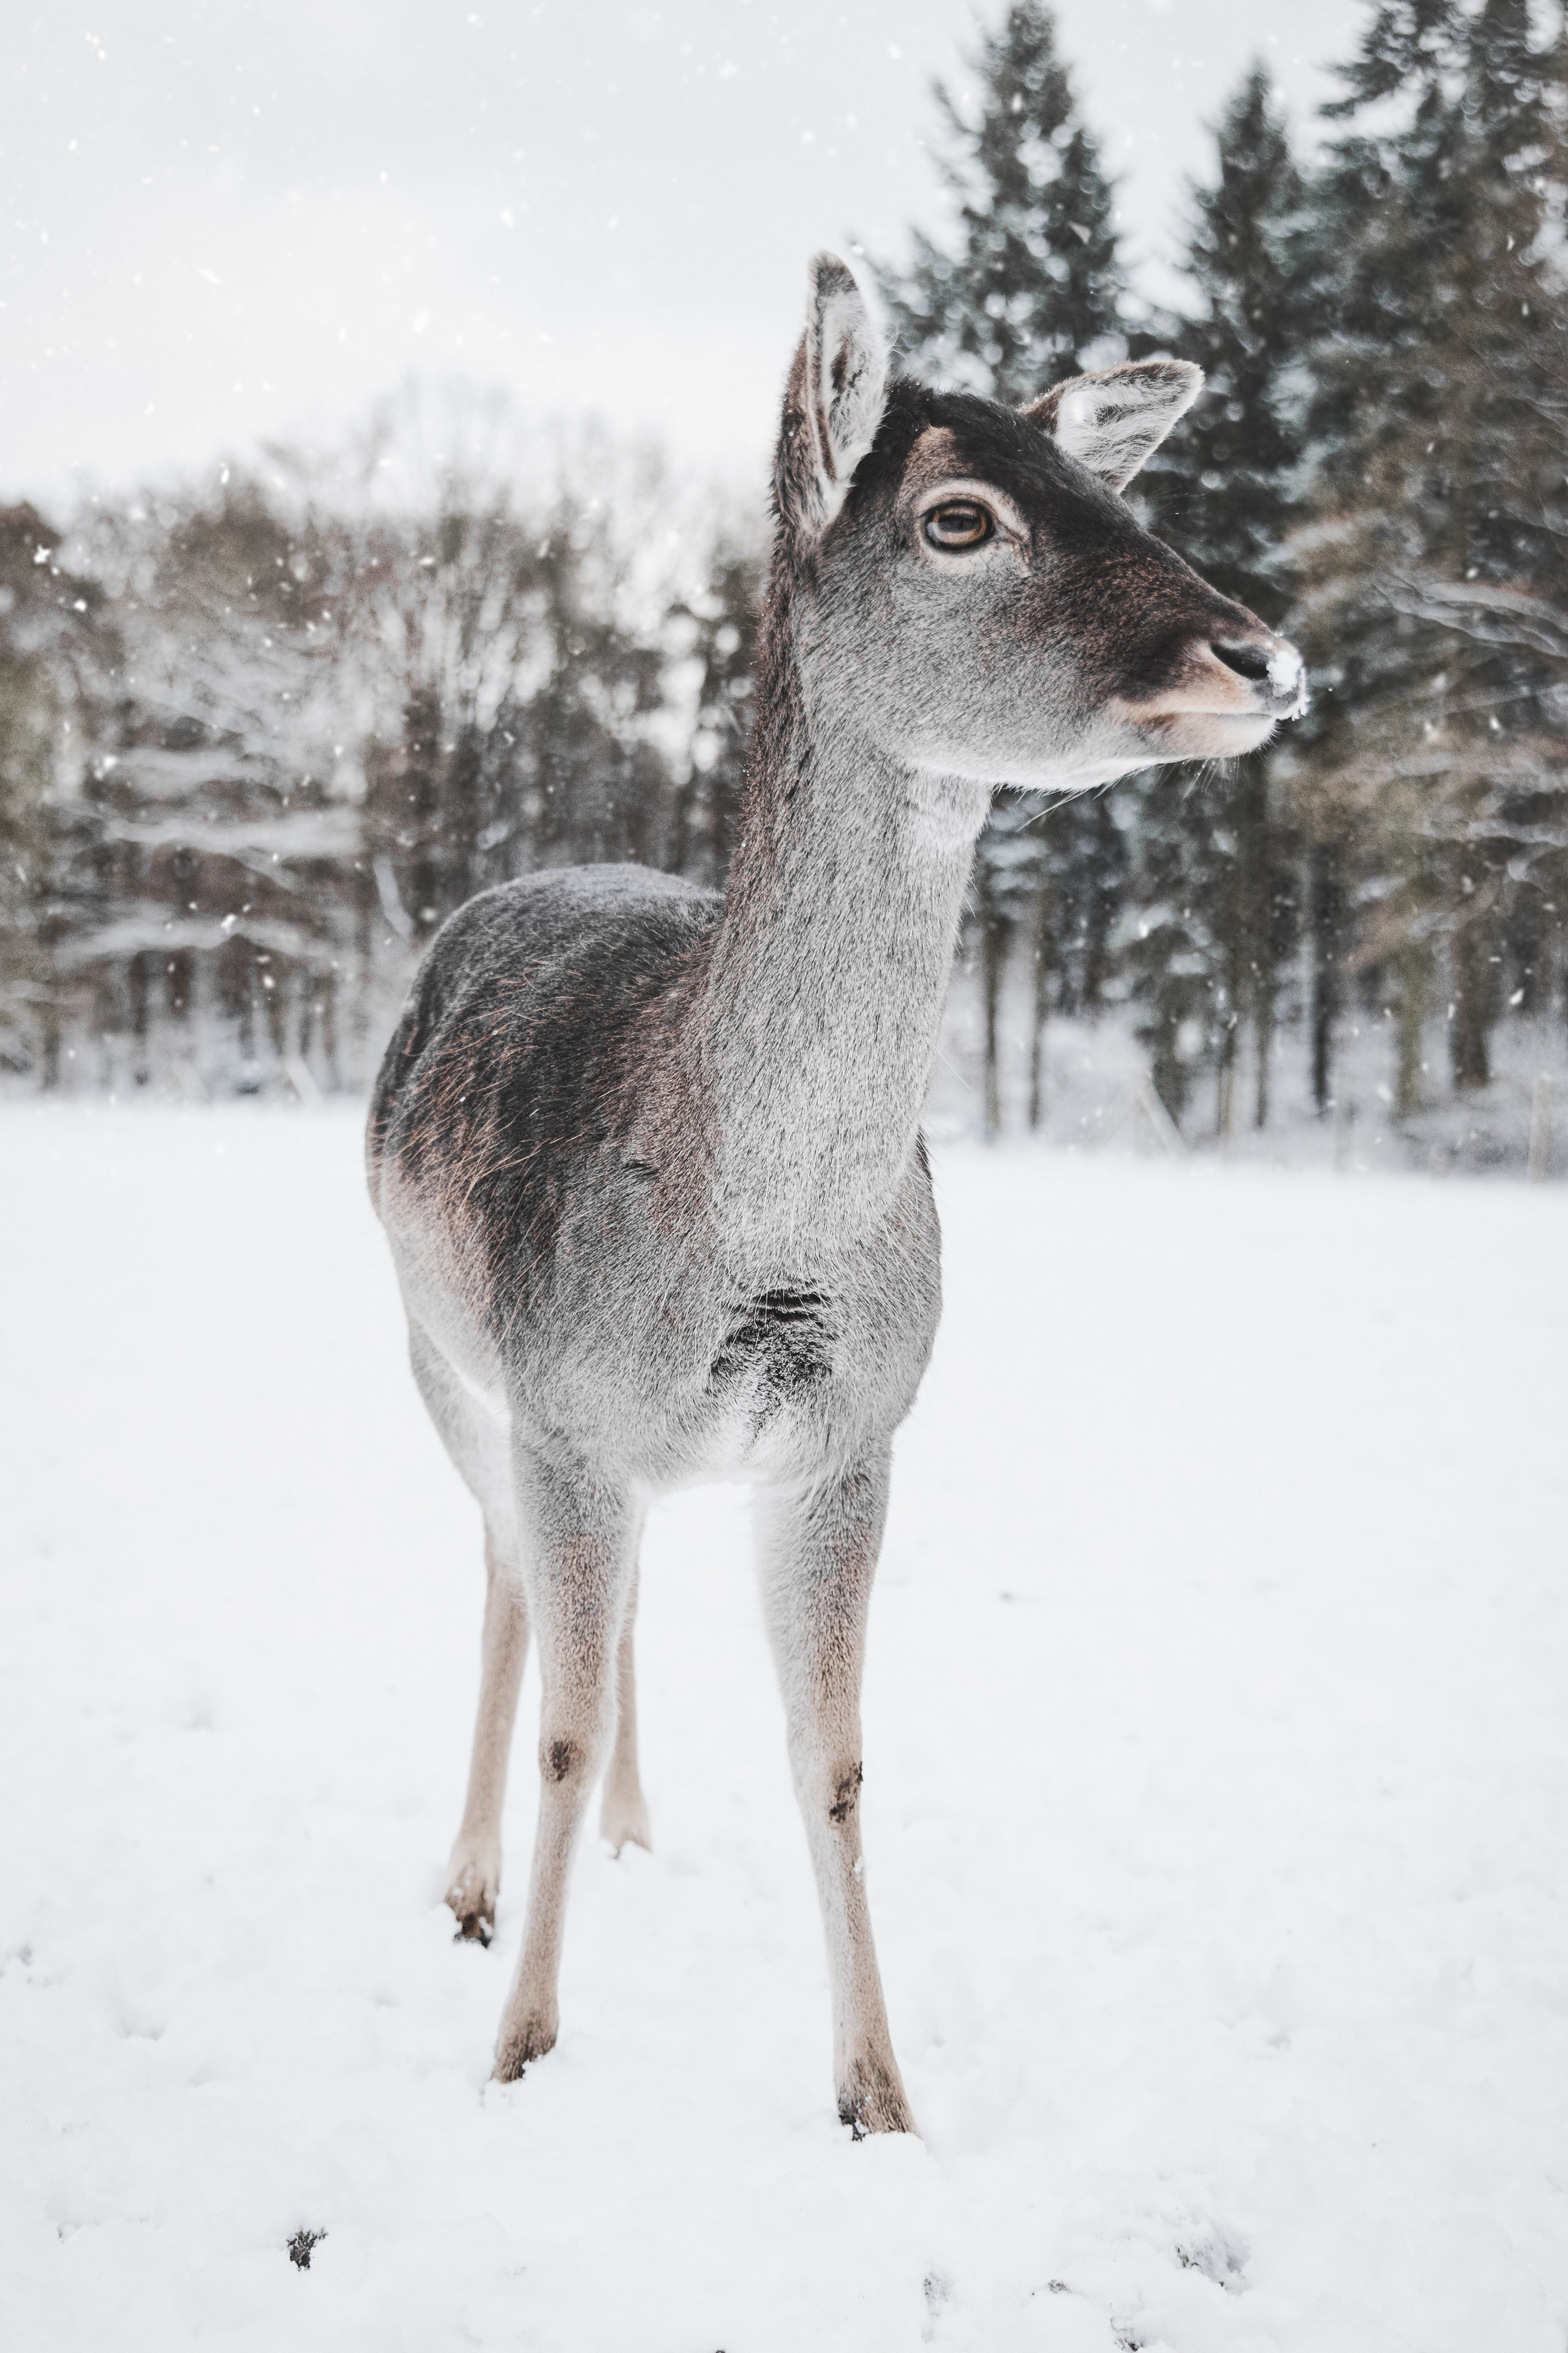 deer standing on snow-coated ground